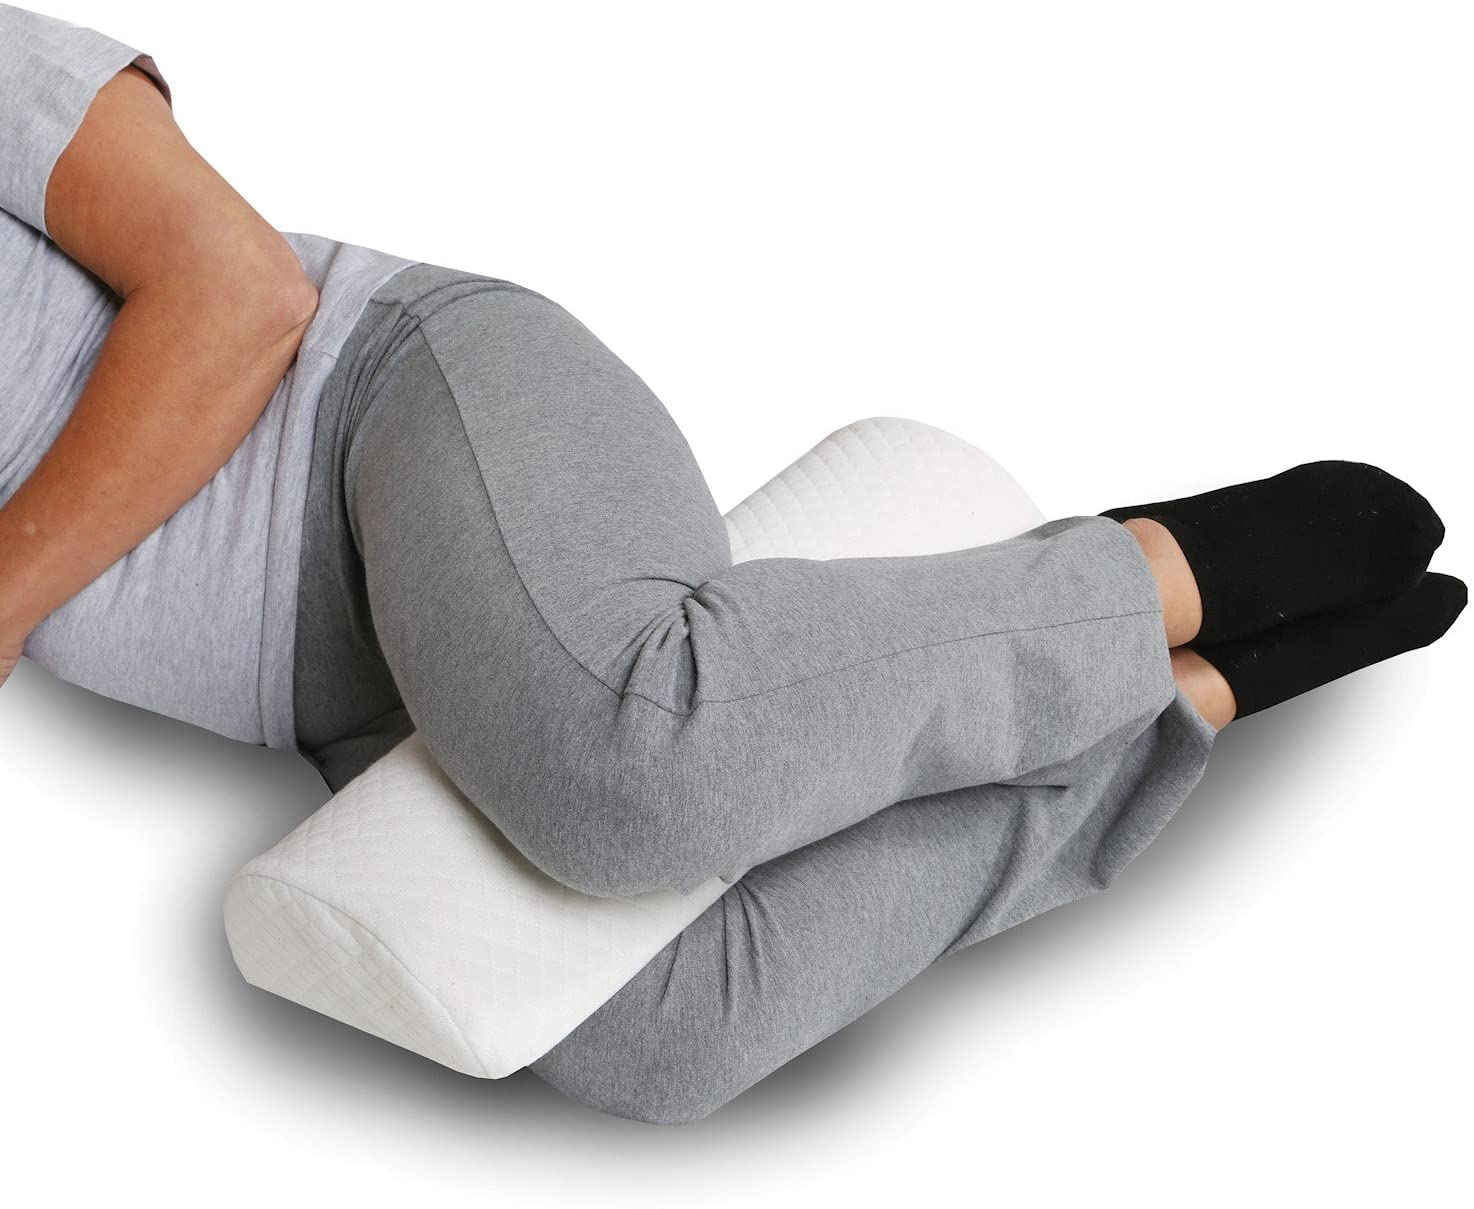 Half-Moon Bolster/Wedge Pillow - Premium Support for Sleeping on Side or Back - Back Pain Relief, Head, or Knee Cushion - Memory Foam Washable Removable Cover - 20